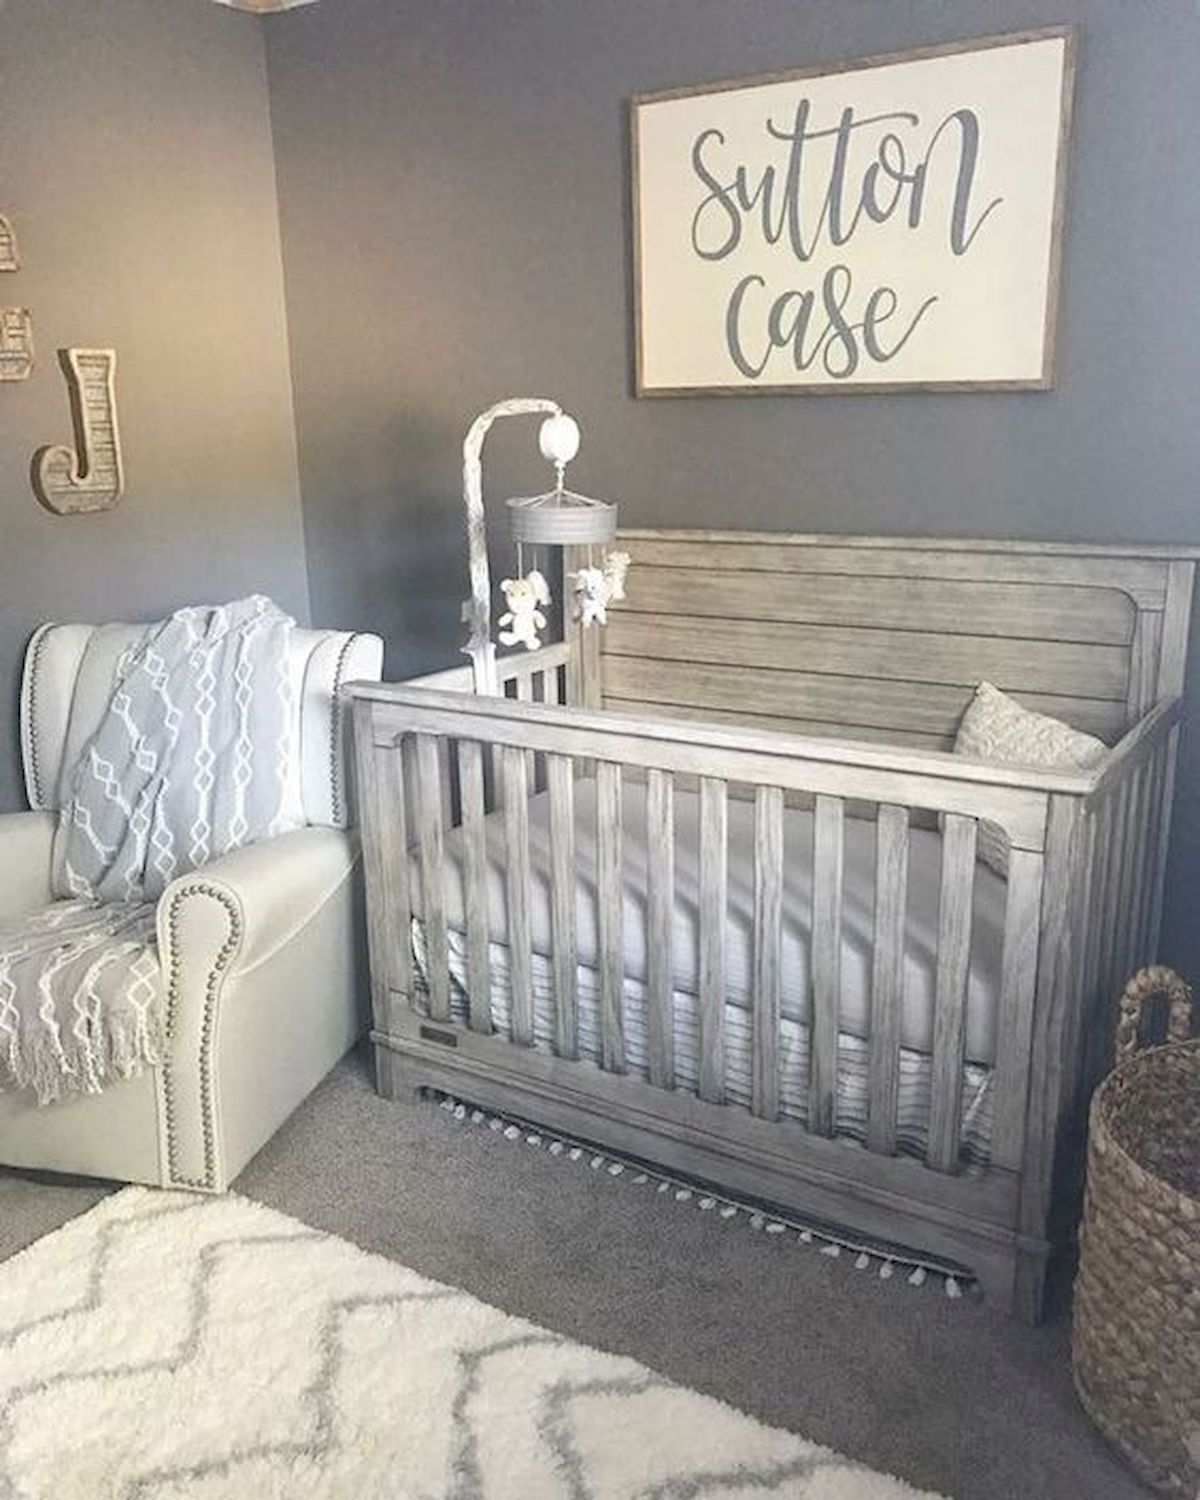 40 Adorable Neutral Nursery Room Ideas images